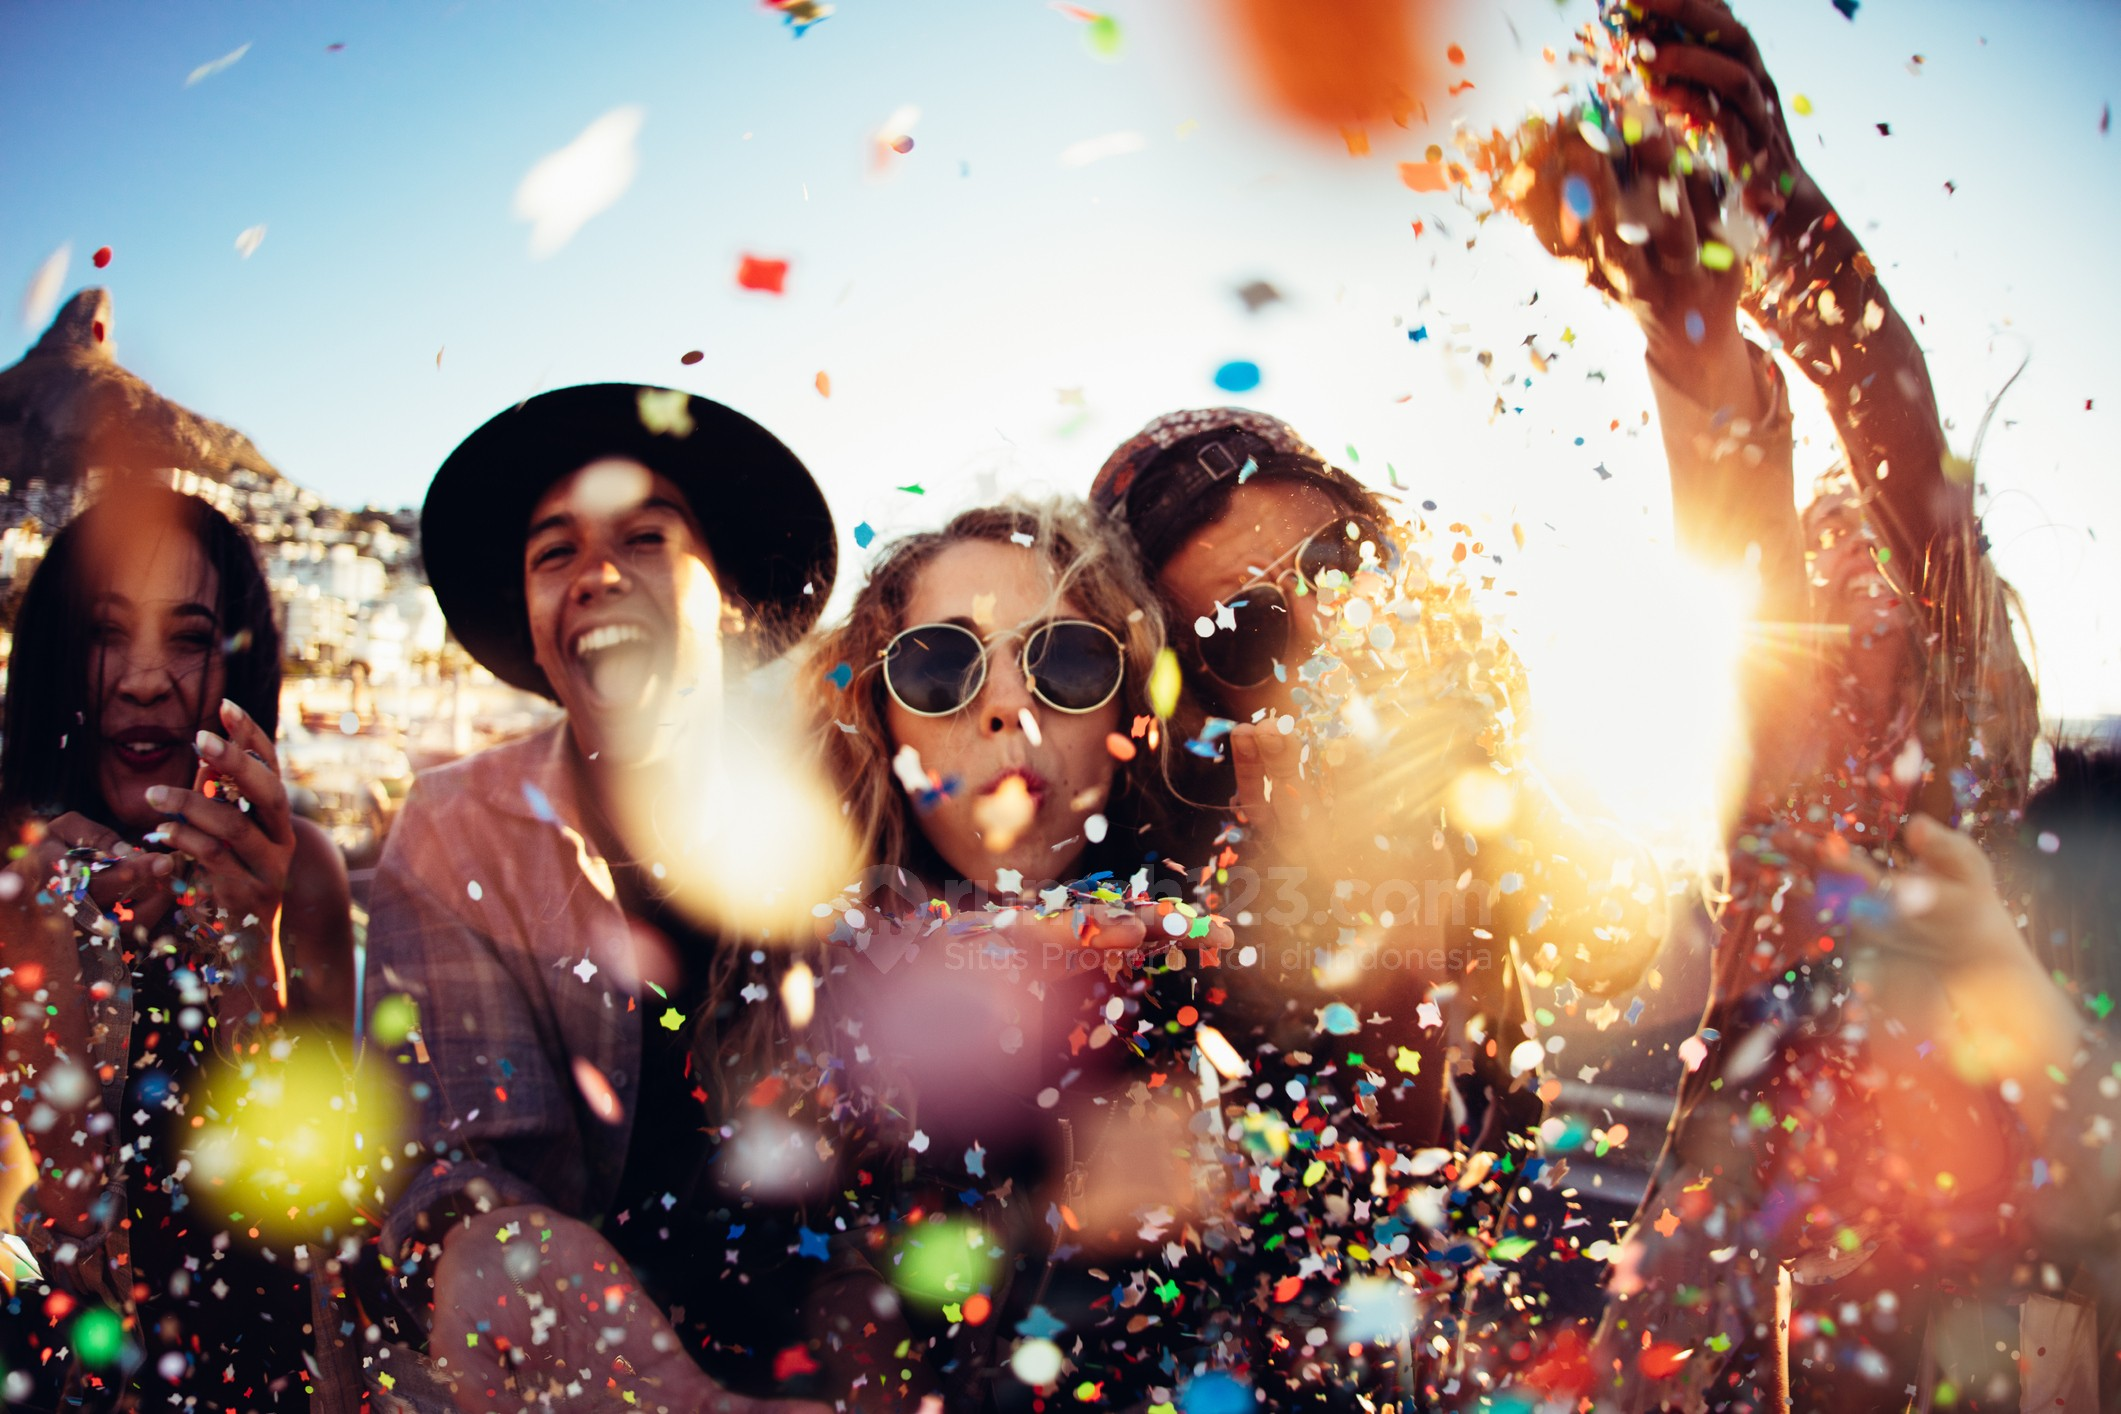 Group of teenager hipster friends partying by blowing and throwing colorful confetti from hands with sunset sun flare